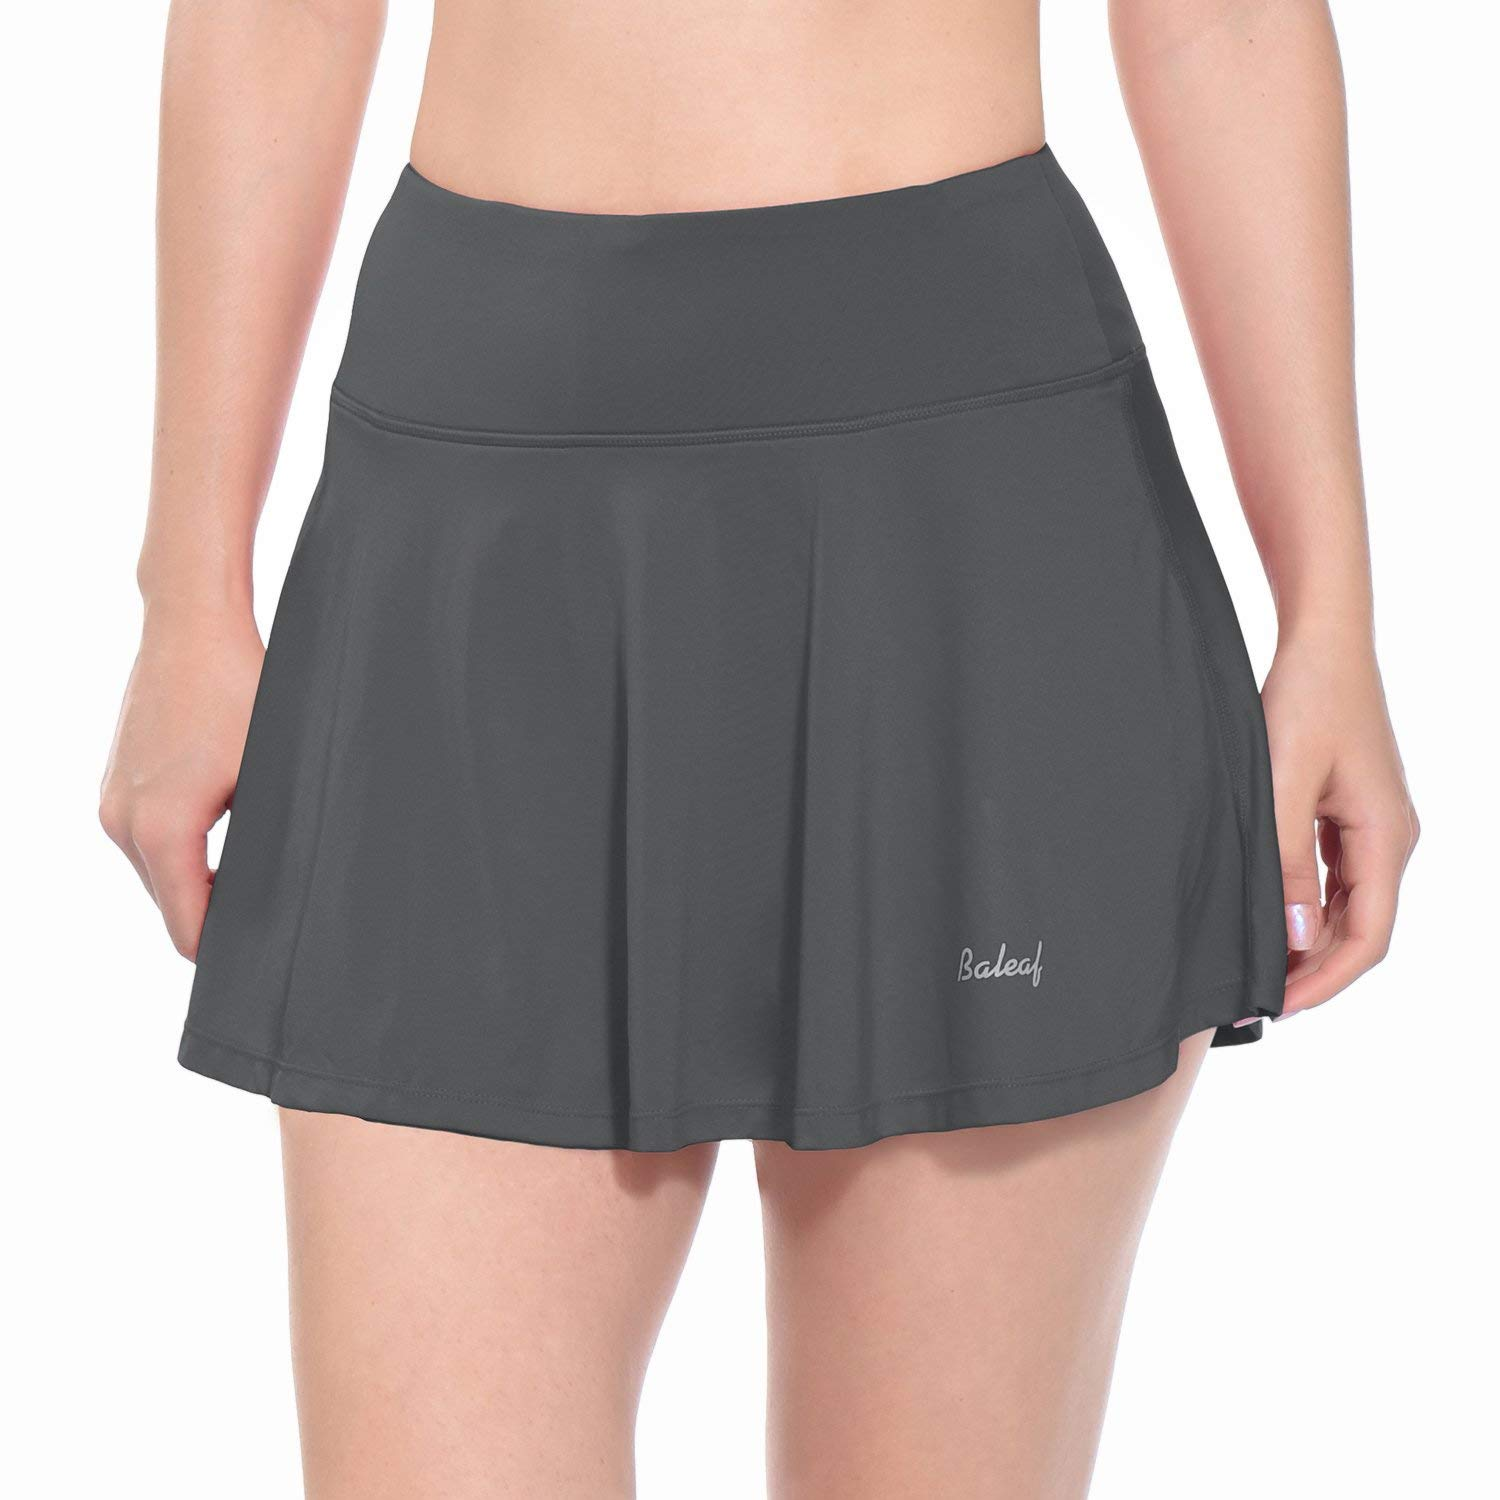 Baleaf Women's Athletic Golf Skirt Tennis Skort Pleated with Pockets Grey Size XL by Baleaf